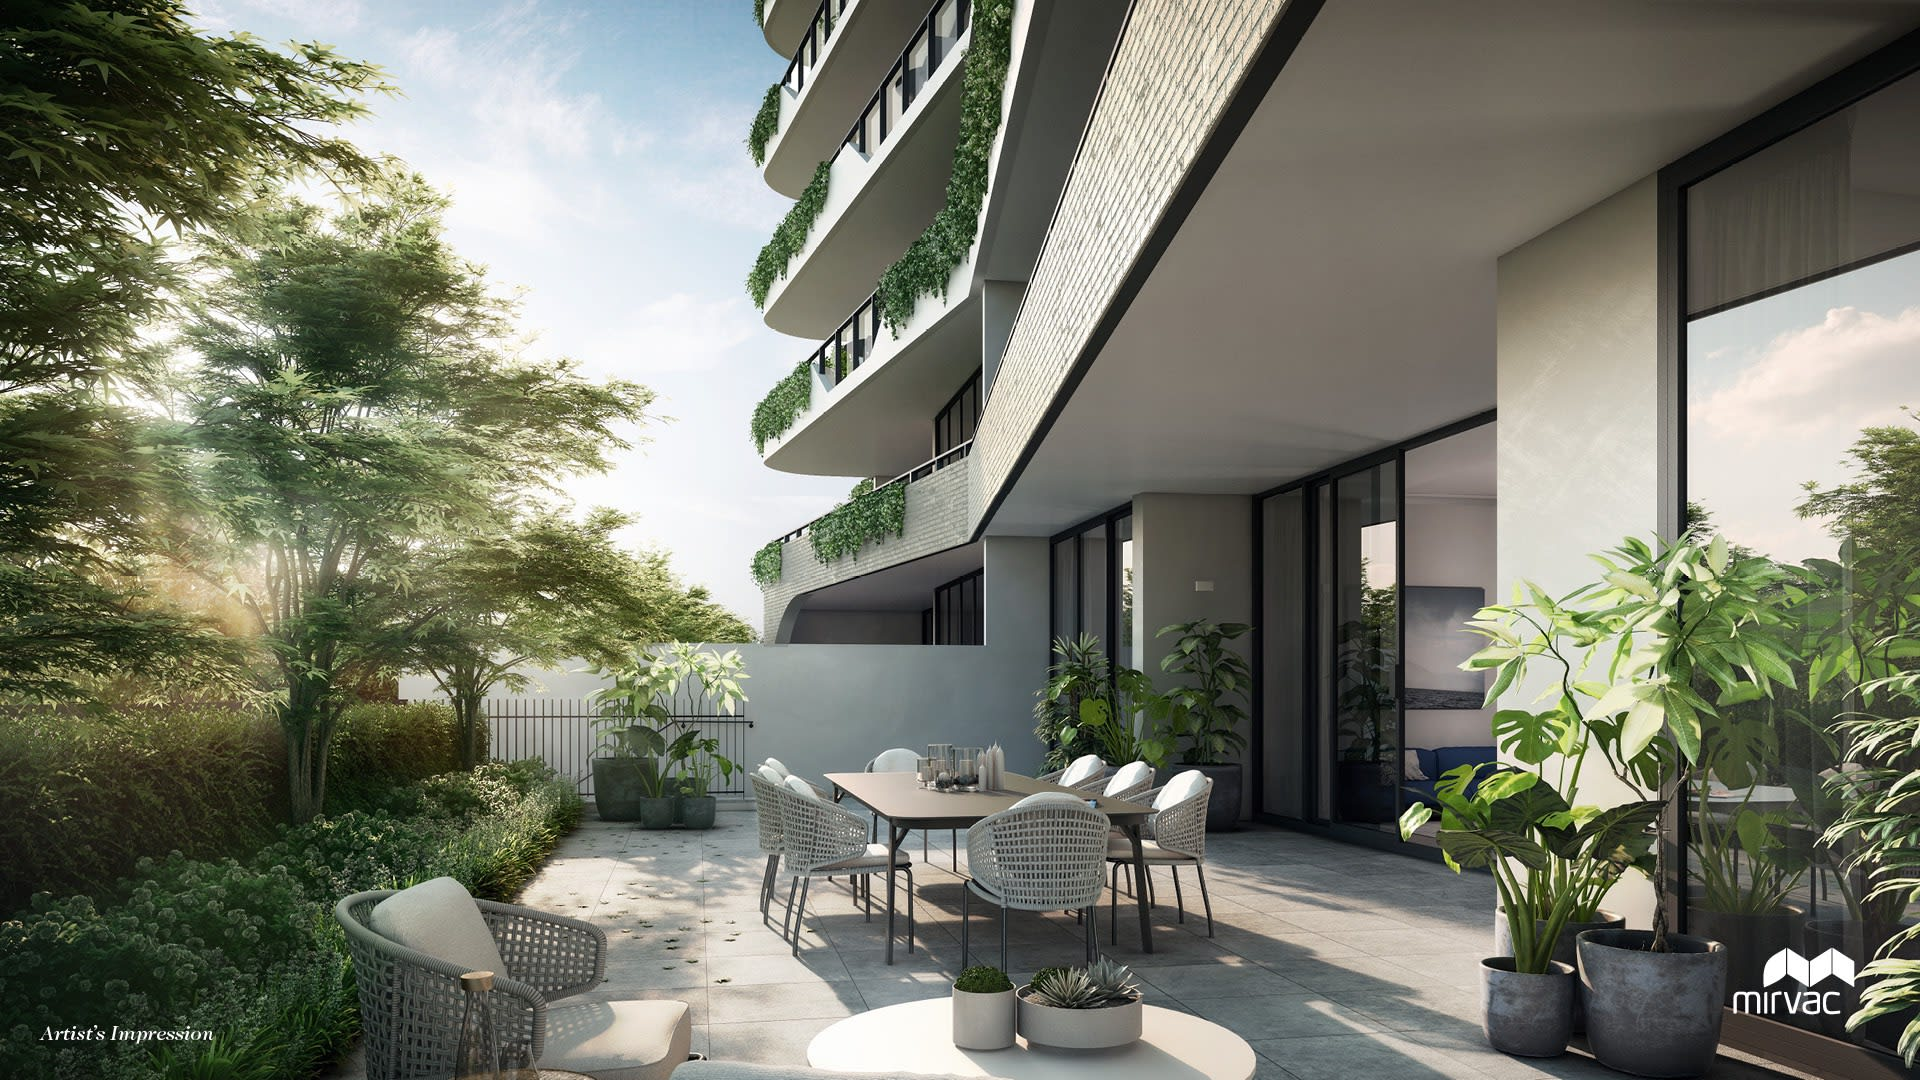 5 reasons to buy a Folia apartment in Melbourne's Doncaster